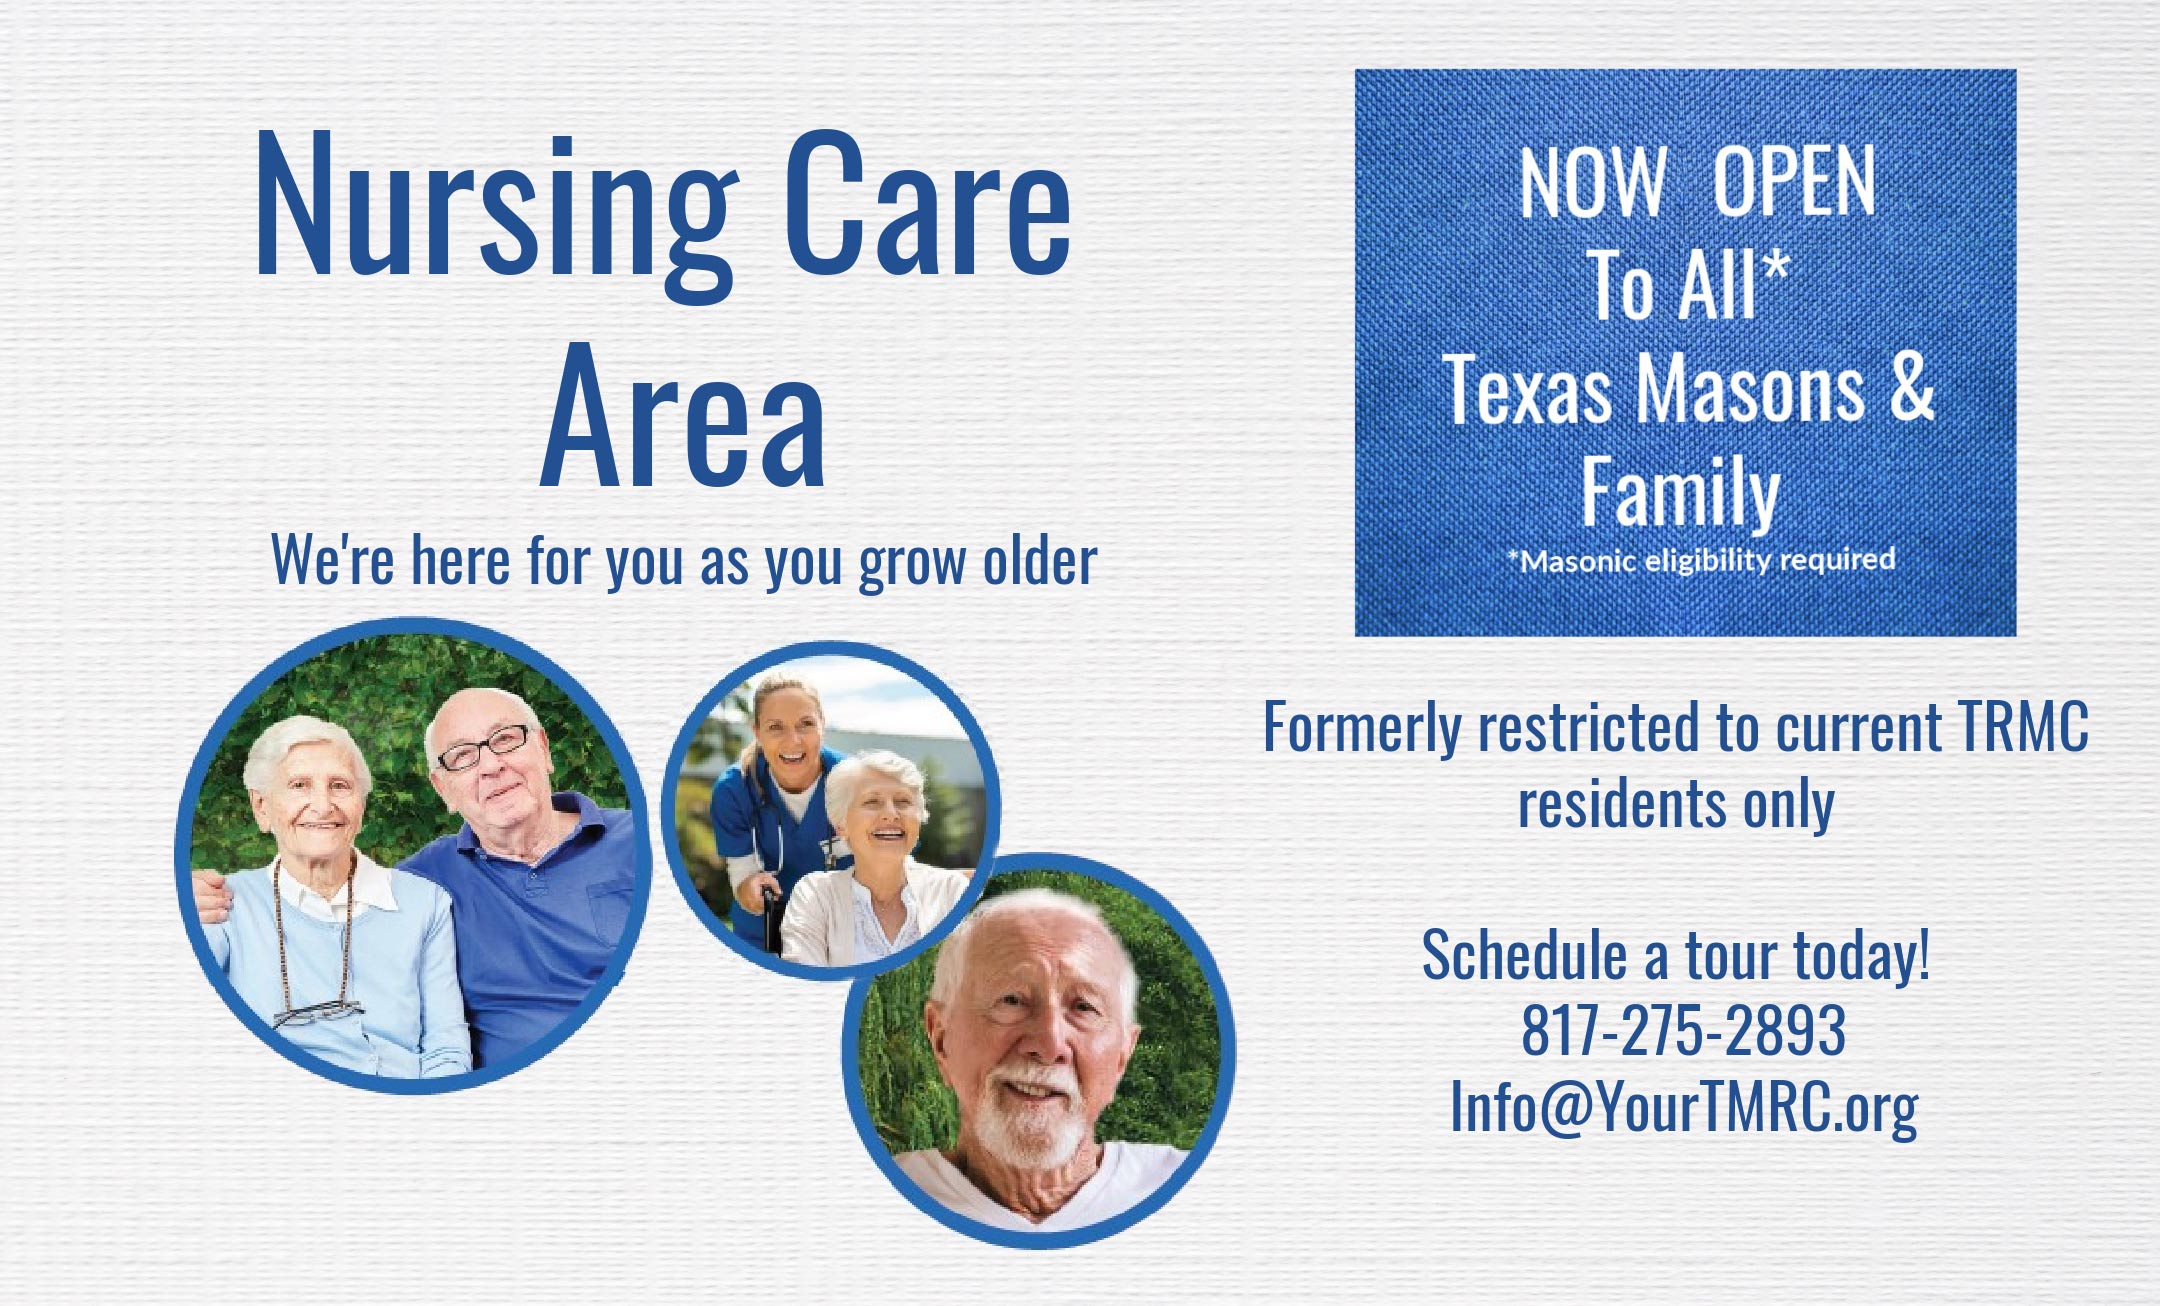 nursing-care-area-now-open-to-all-texas-masons-and-family